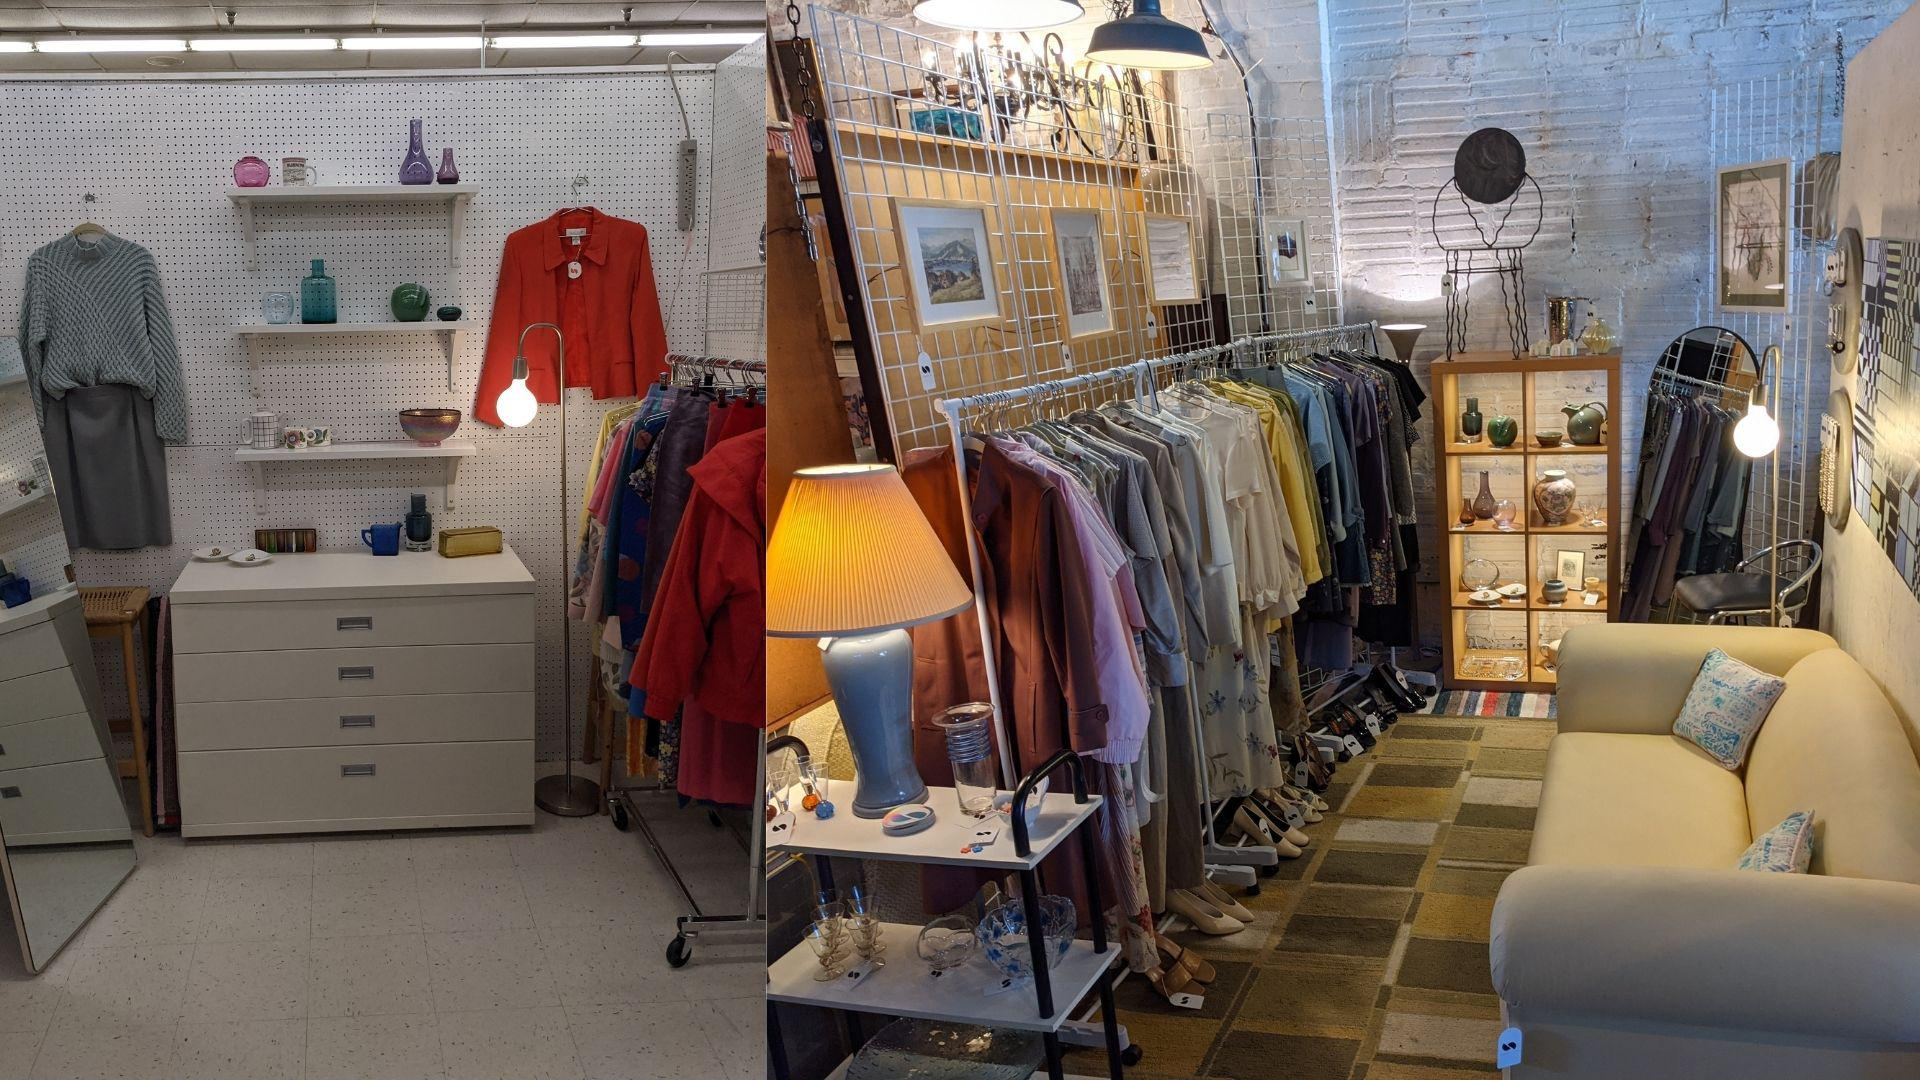 "[Image] Update: I posted in December my ""just start"" moment. Since I opened my first vintage booth, I've already moved into my dream location downtown and have been asked to be a vendor at a new boutique! Here is my 1st booth and my booth for my next upcoming event. Just start, everyone!"